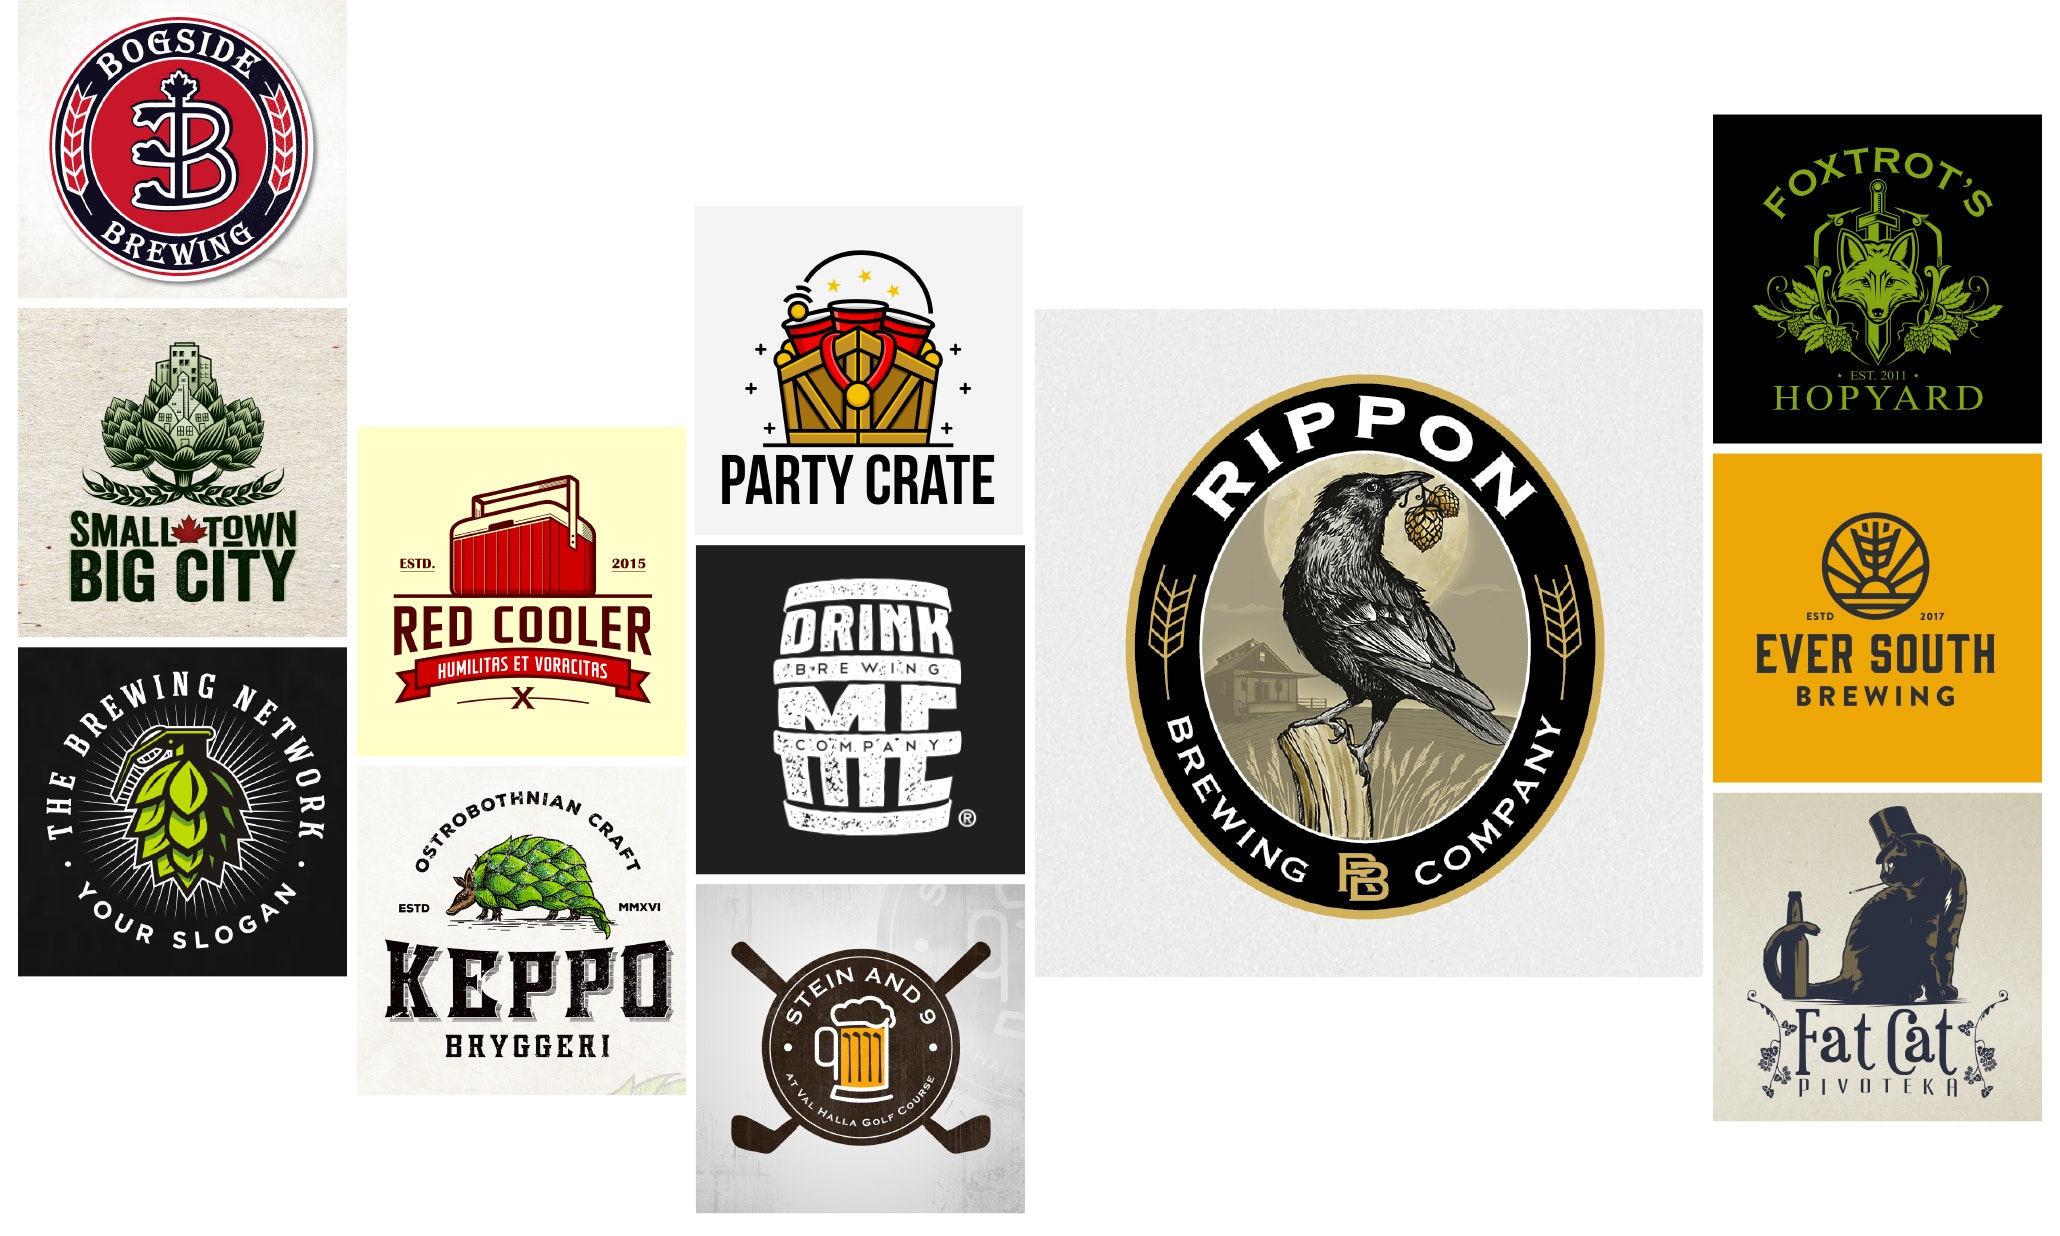 47 beer and brewery logos to drink in